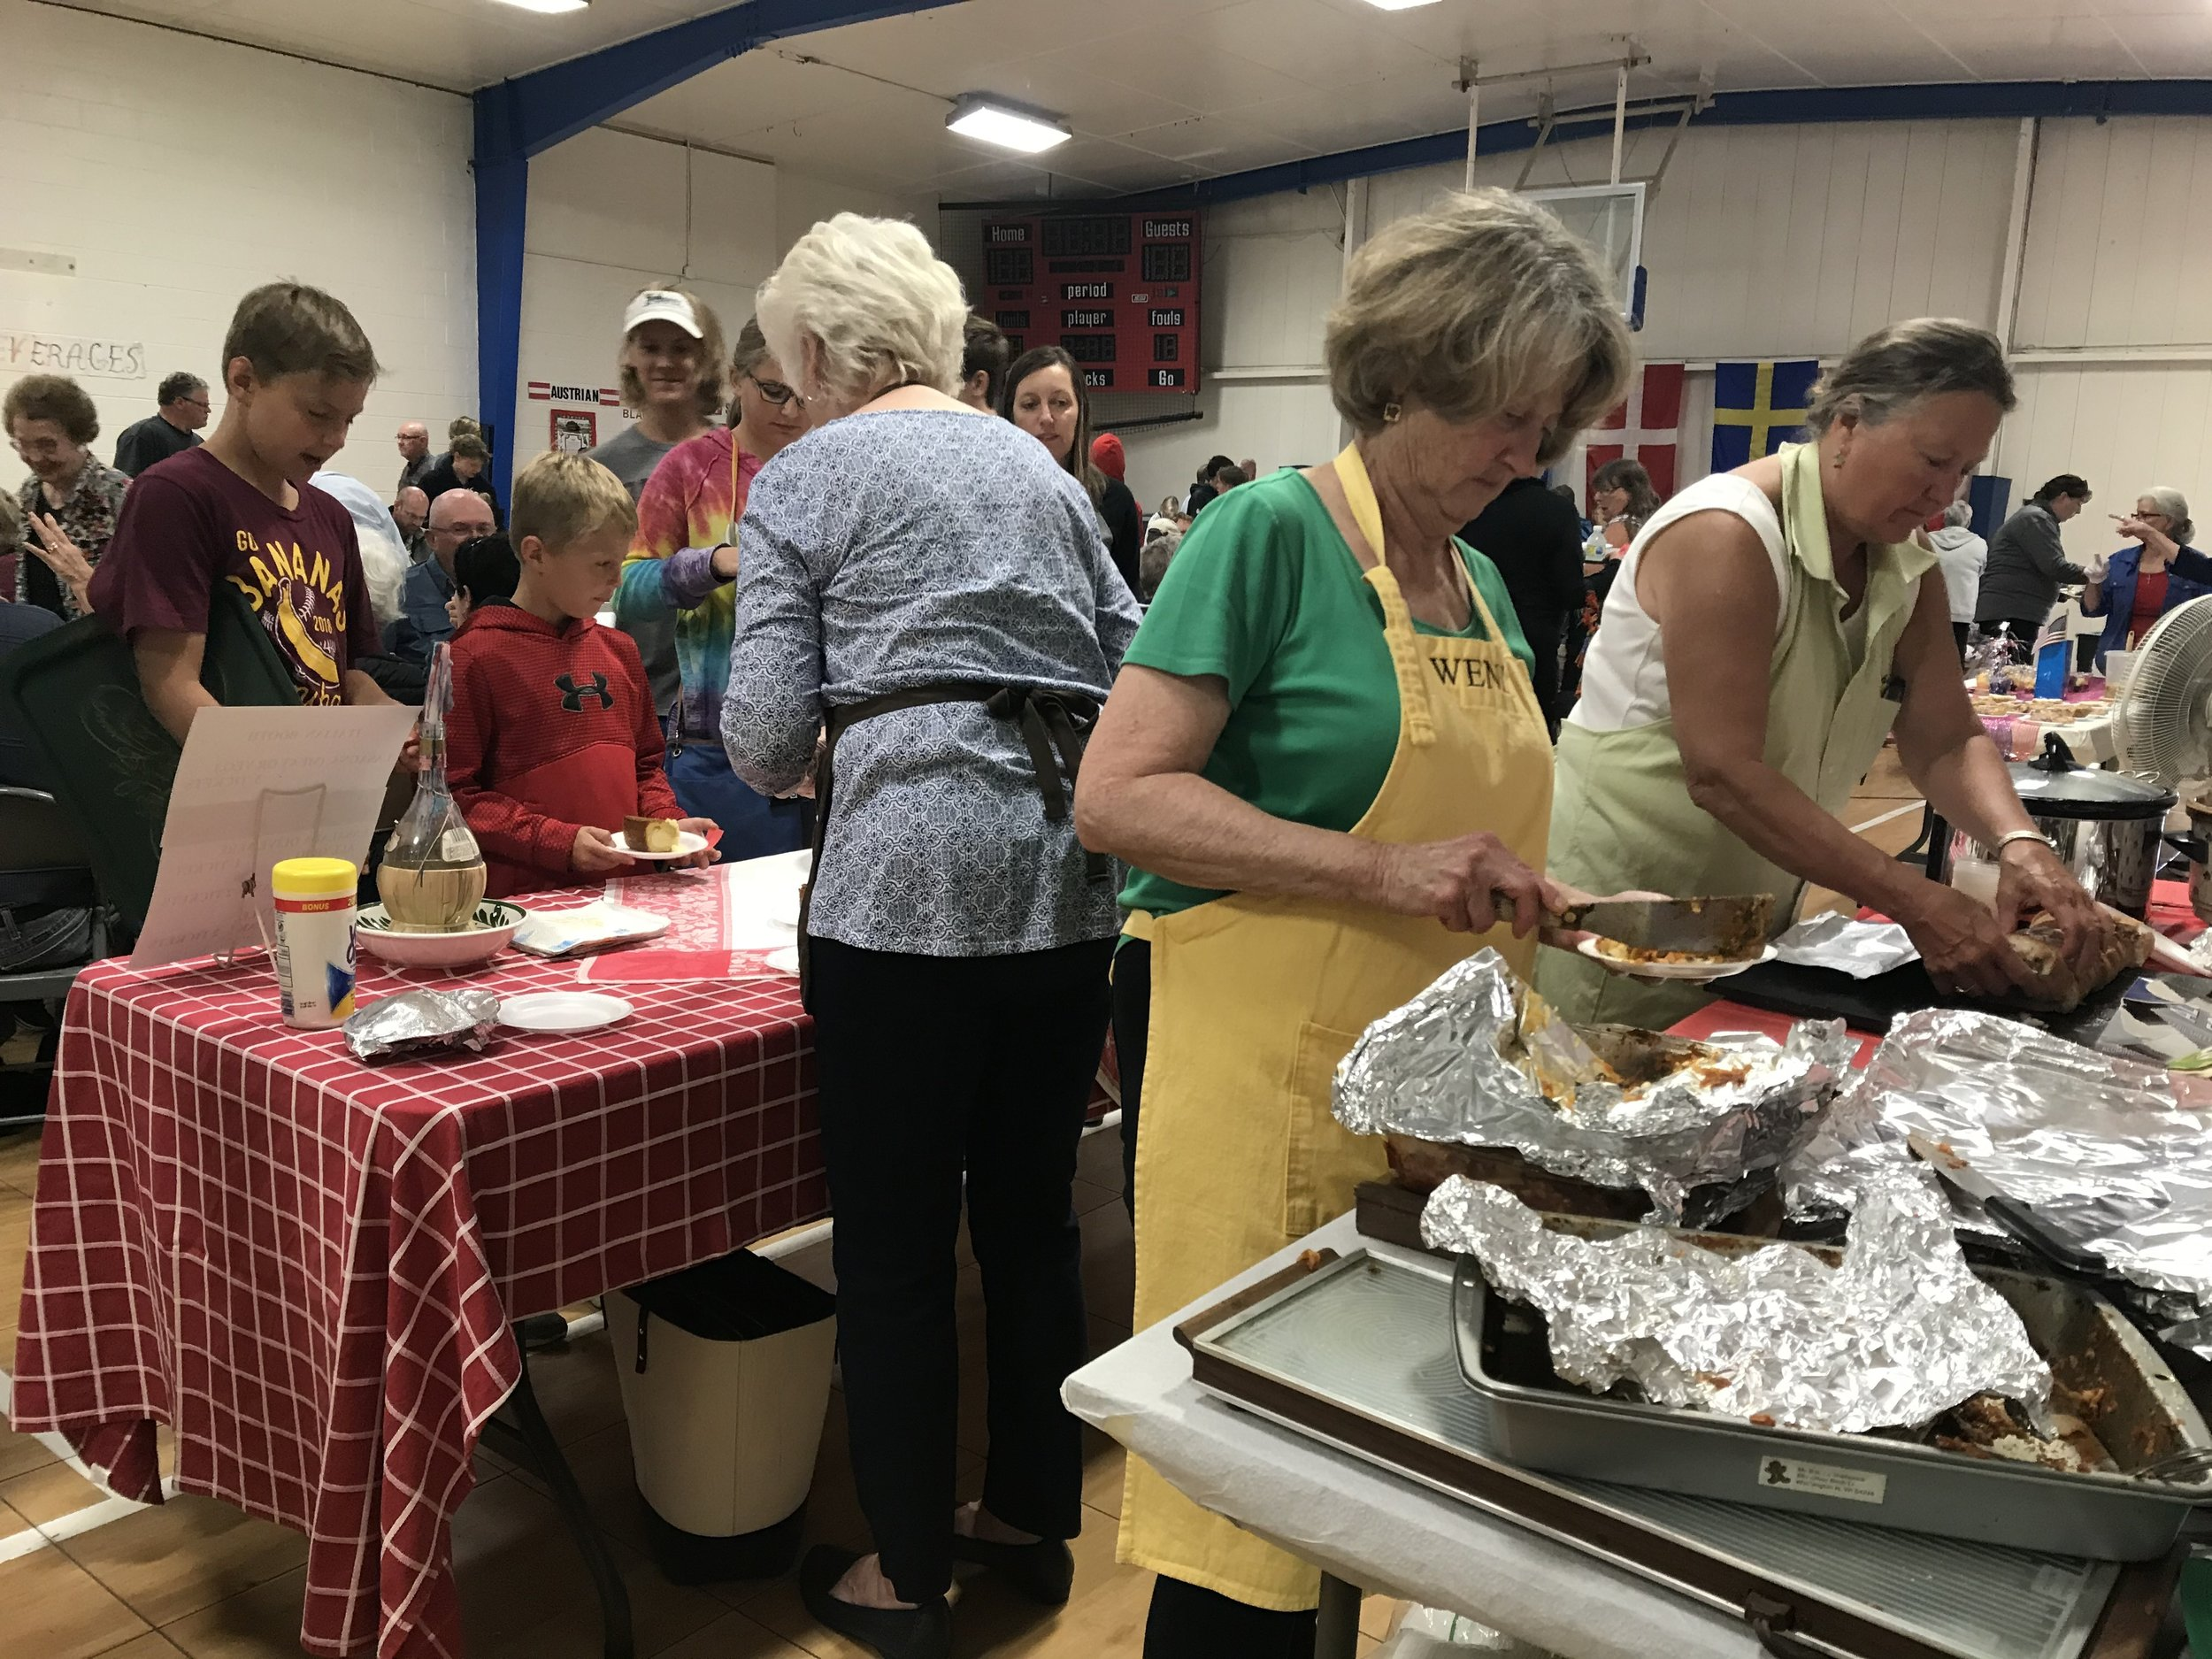 Wendy Cooke, right, serves up lasagna at the Italian booth.